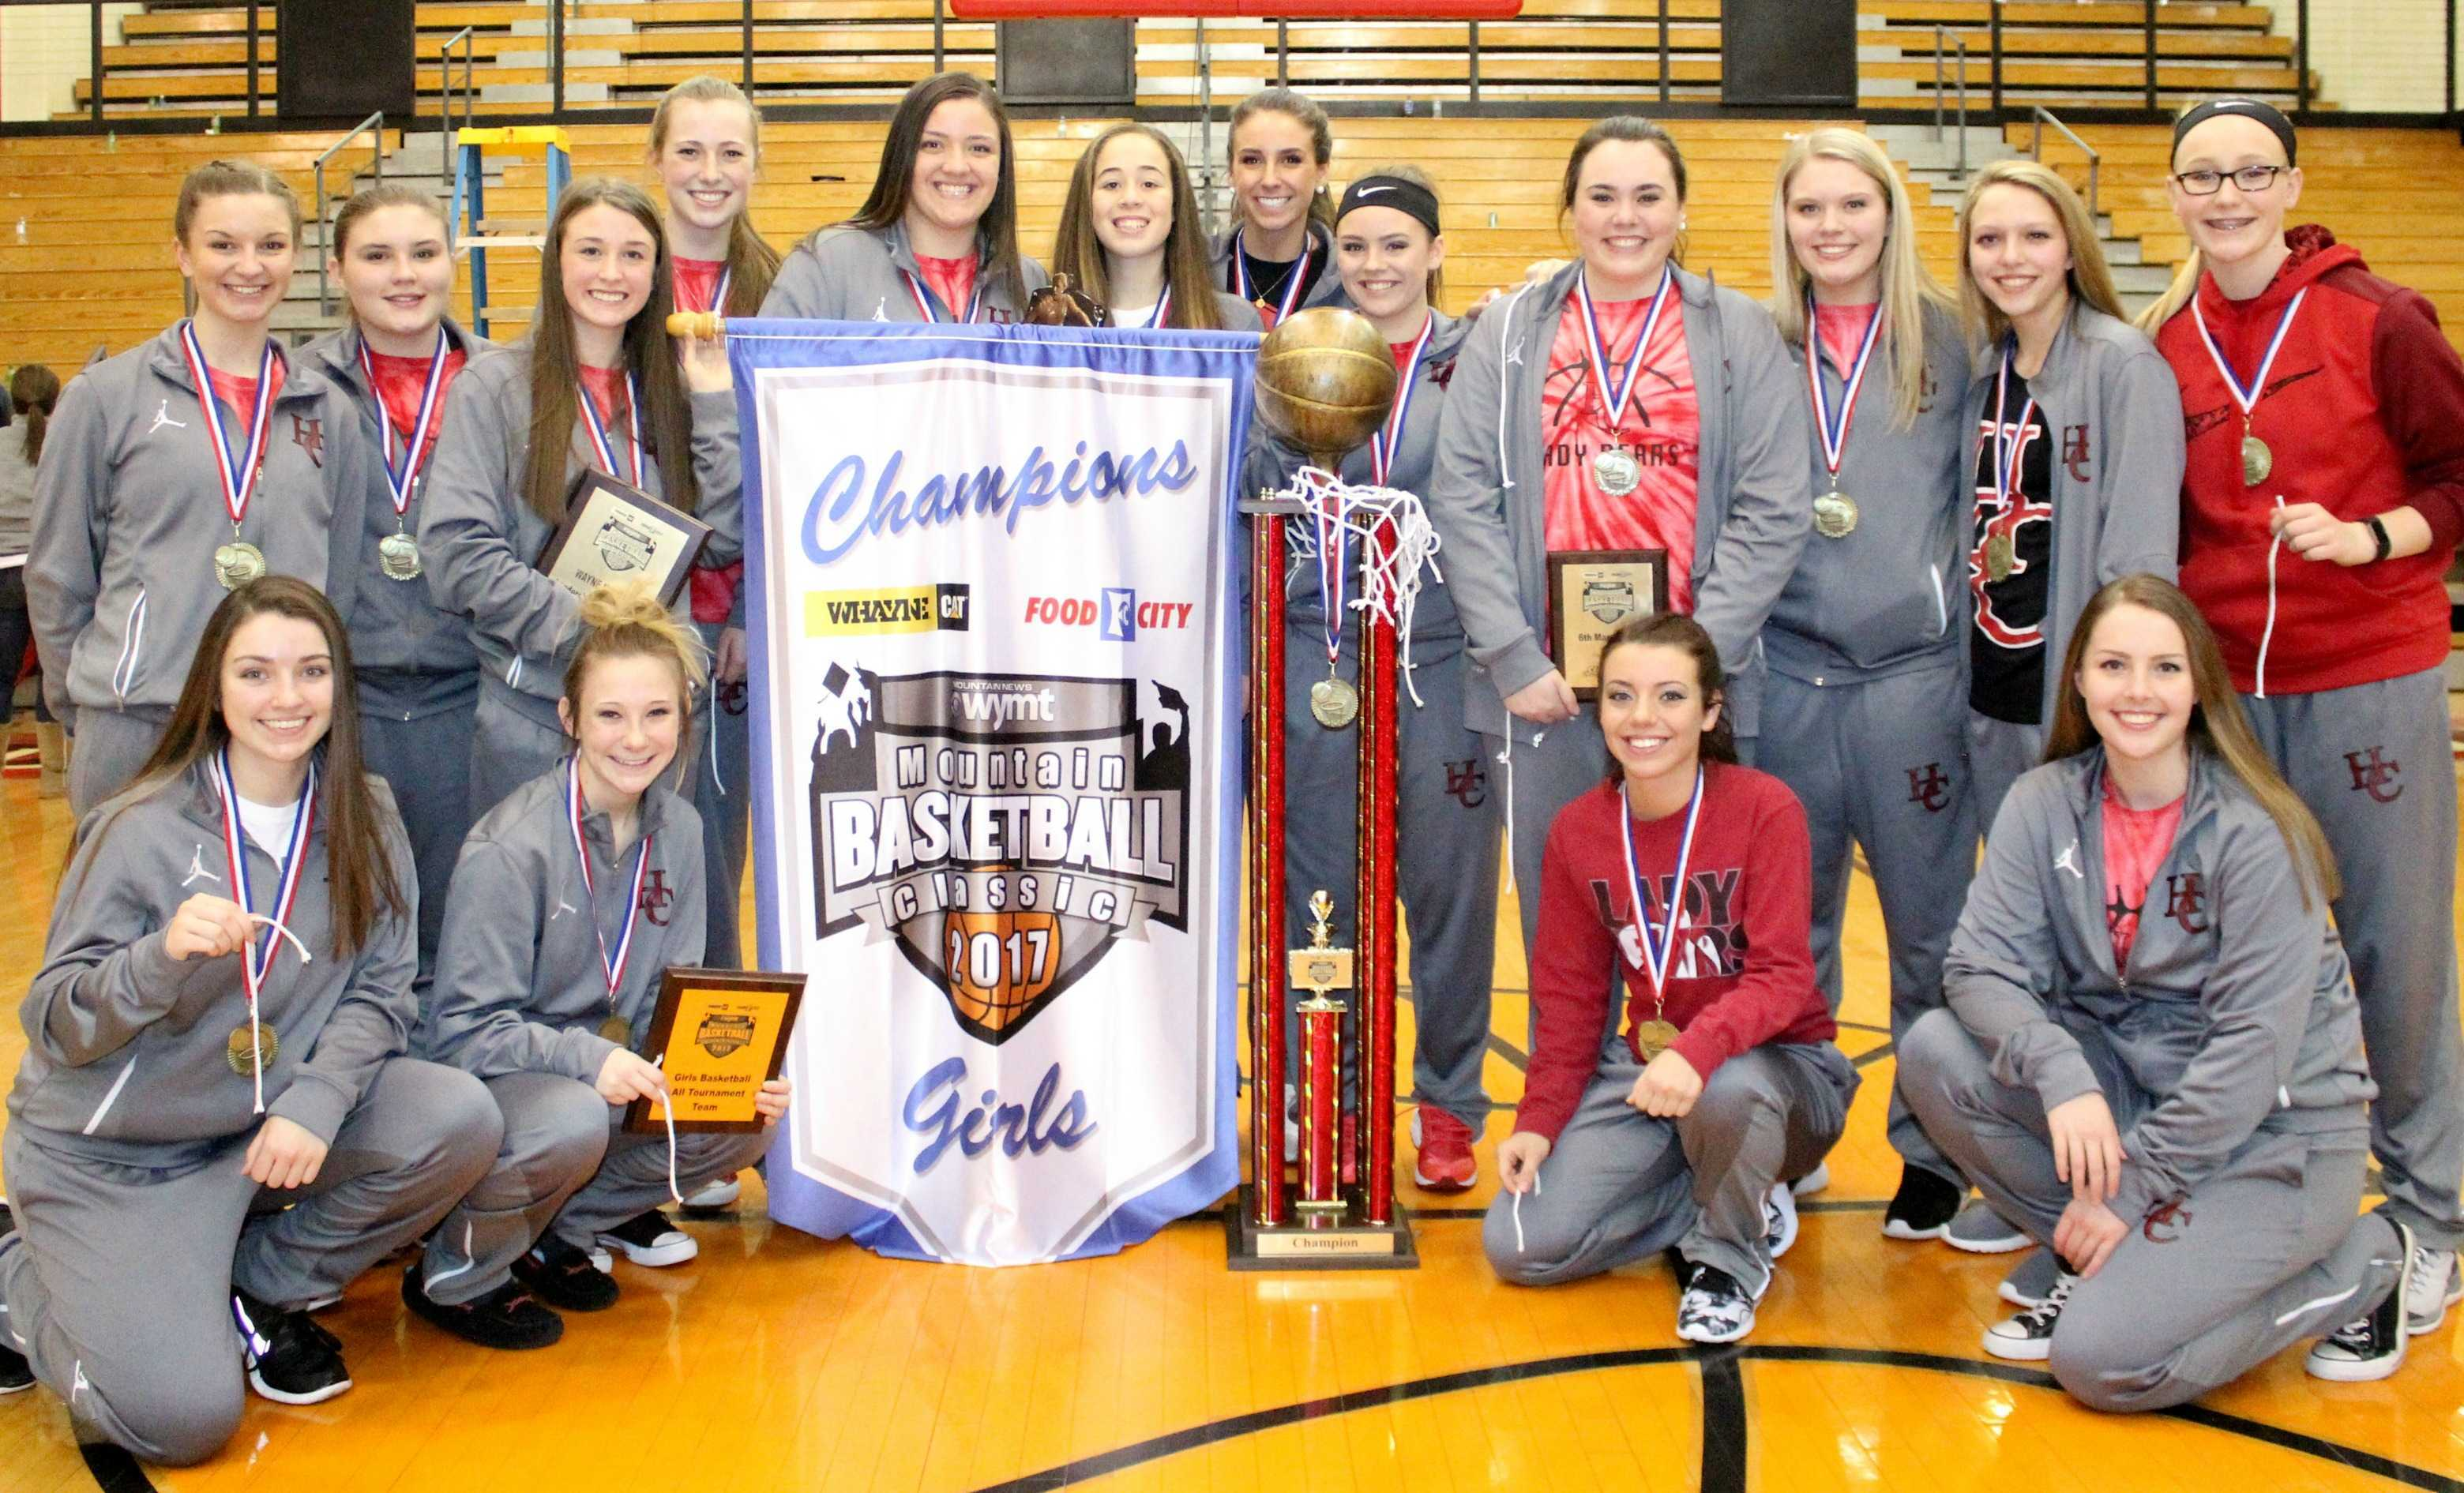 The Harlan County Lady Bears are pictured with their championship trophy and banner after winning the WYMT Mountain Classic title, the first in county history. Team members include, from left, front row: Morgan Blakley, Phebe McHargue, K.K. Johnson and Dixie Ewing; back row: Rebecca Middleton, Macie Napier, Hannay Gaw, Lainey Cox, Kaylea Gross, Shelby McDaniel, Blair Green, Breann Turner, Morgan Napier, Brooklyn Wood and Emily Long.